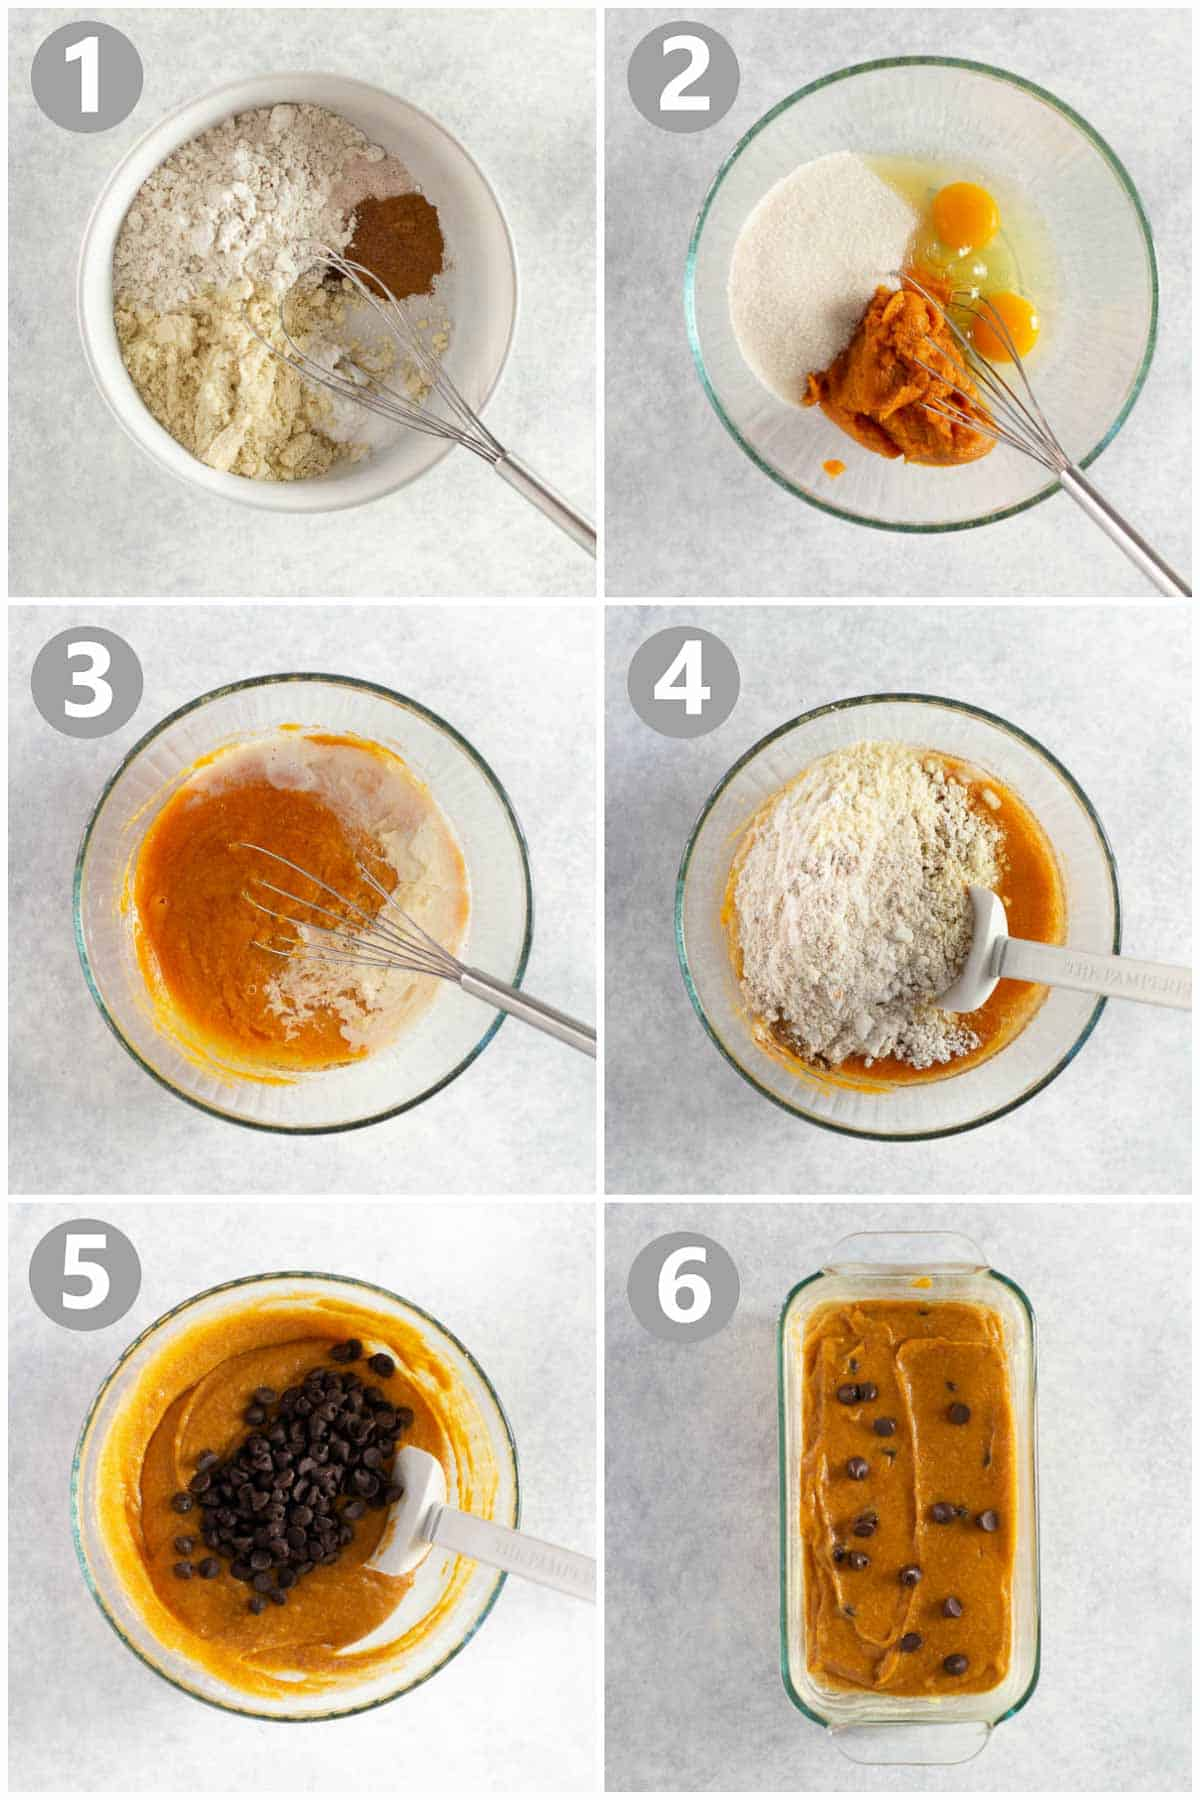 step-by-step instructions on how to make gluten-free pumpkin bread